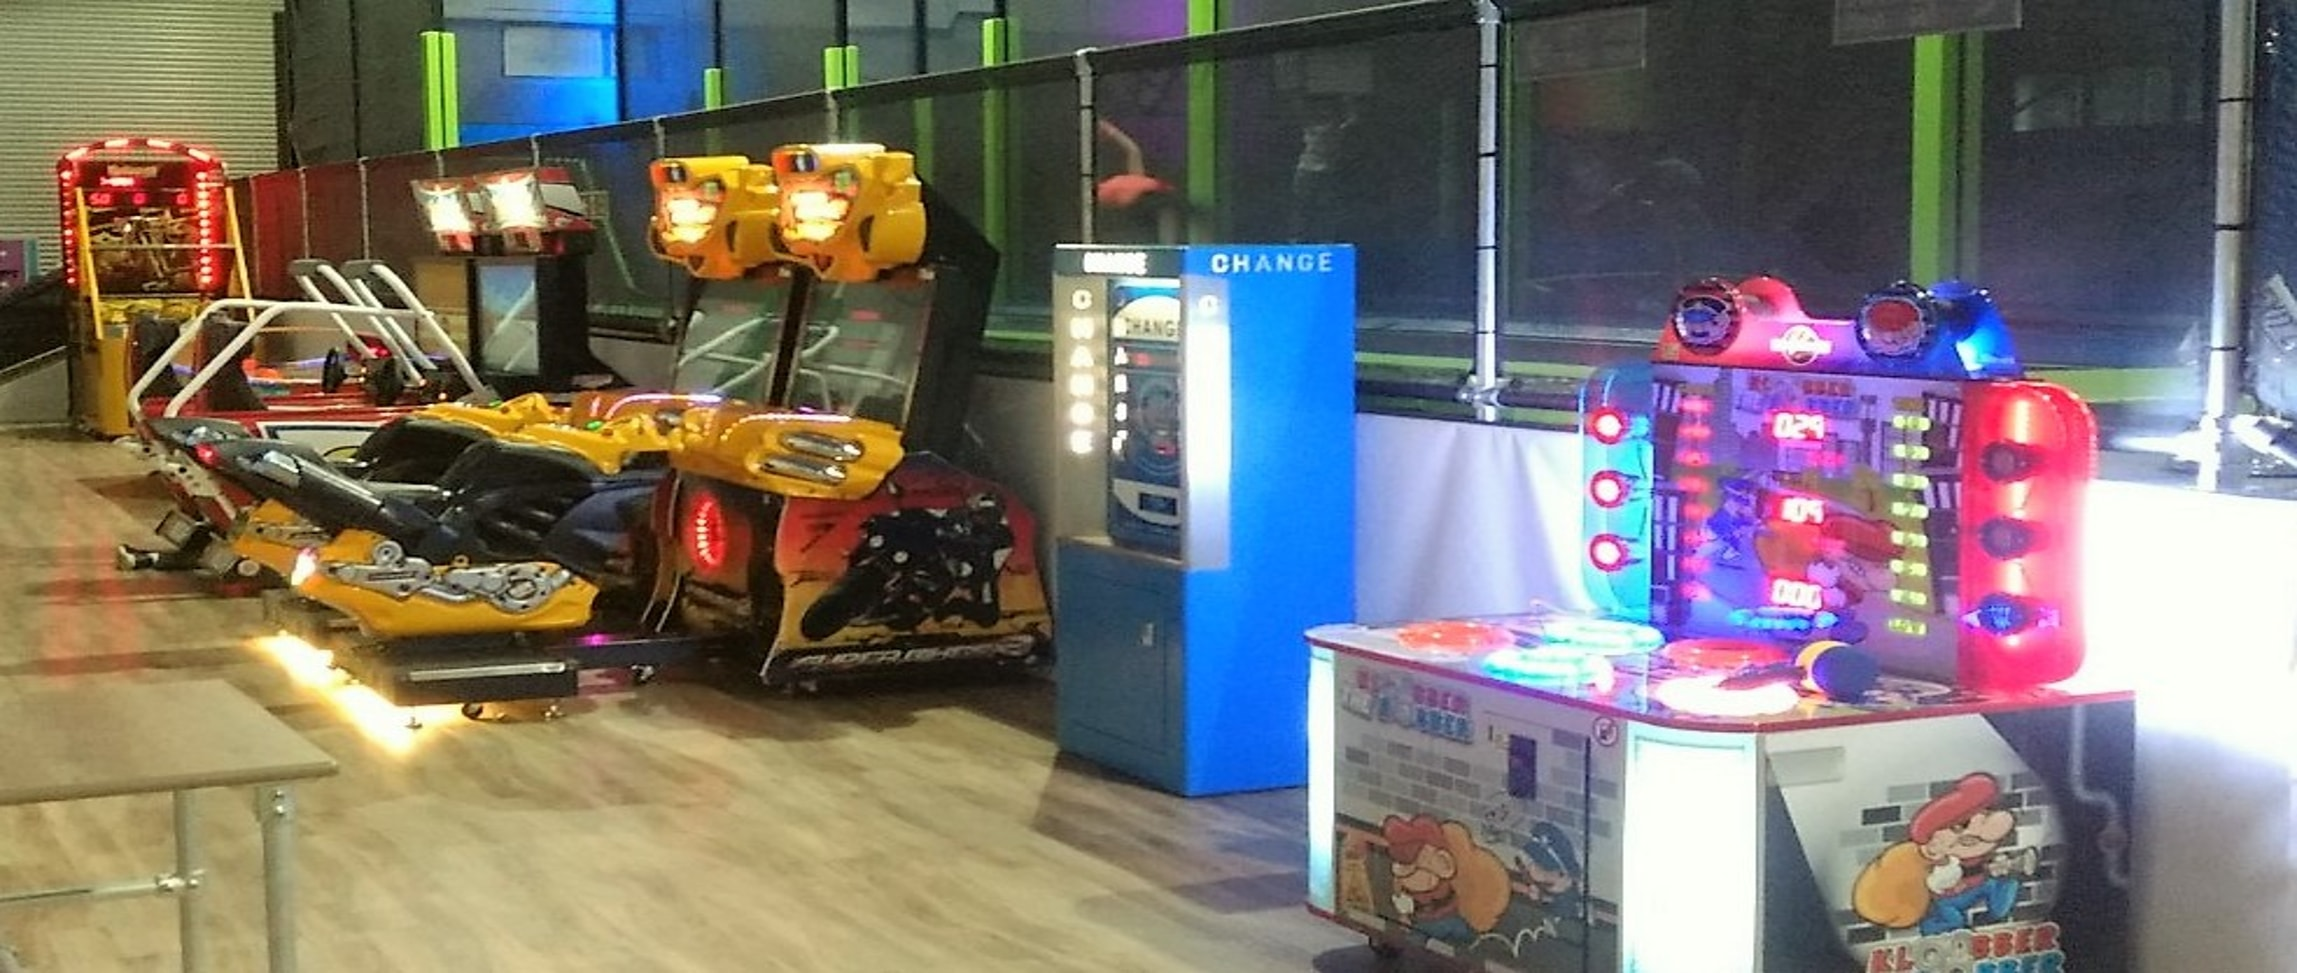 trampoline park amusement machines